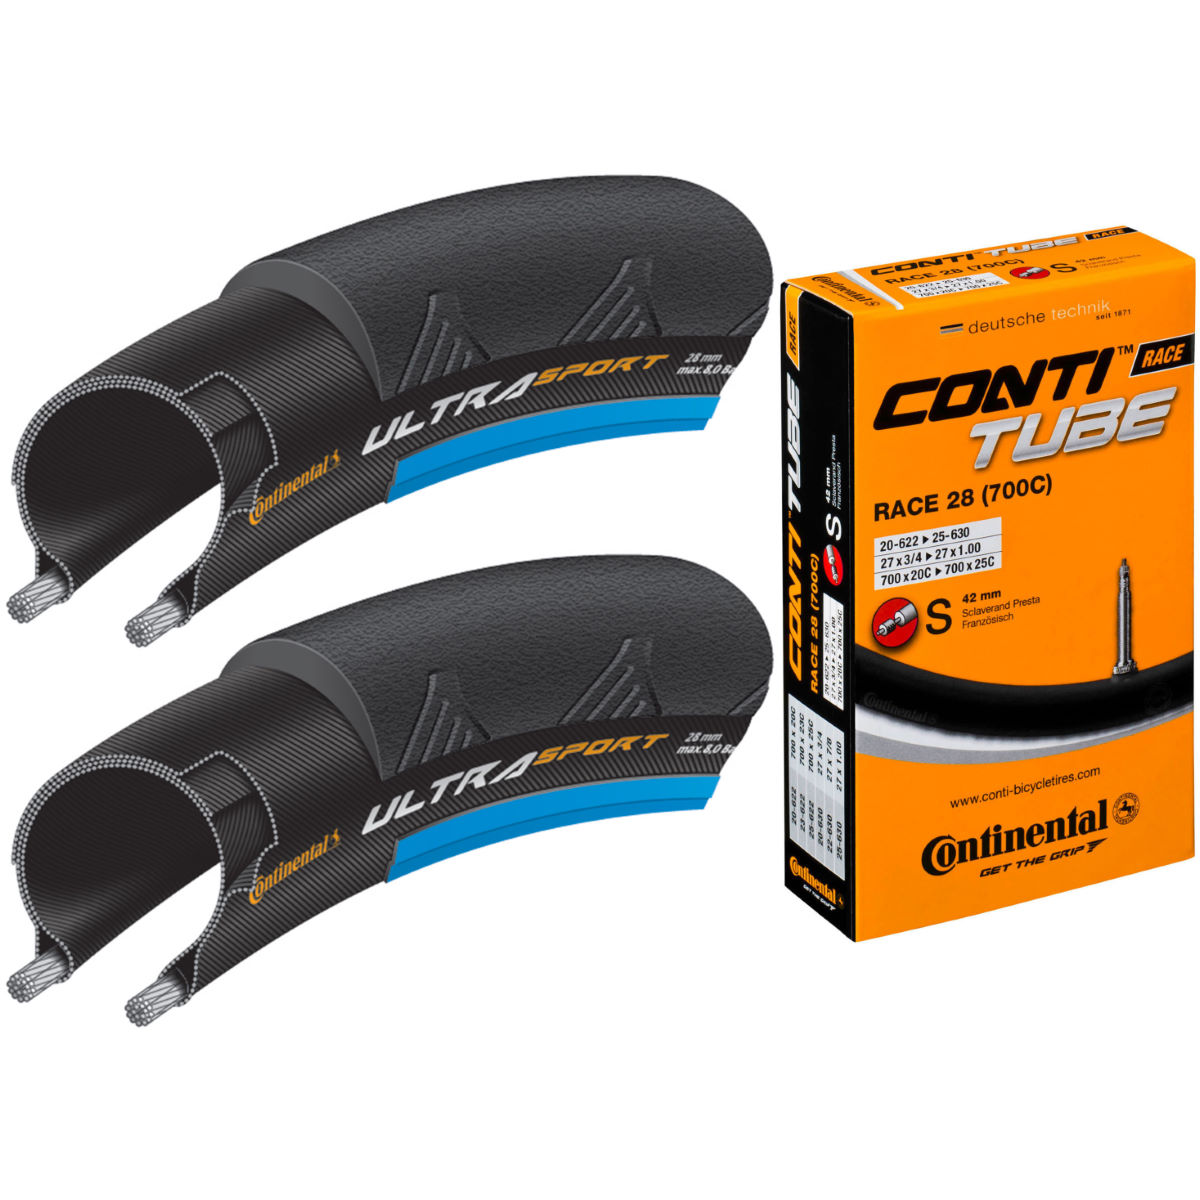 Continental Ultra Sport II Blue 23c Tyres + Tubes   Tyres